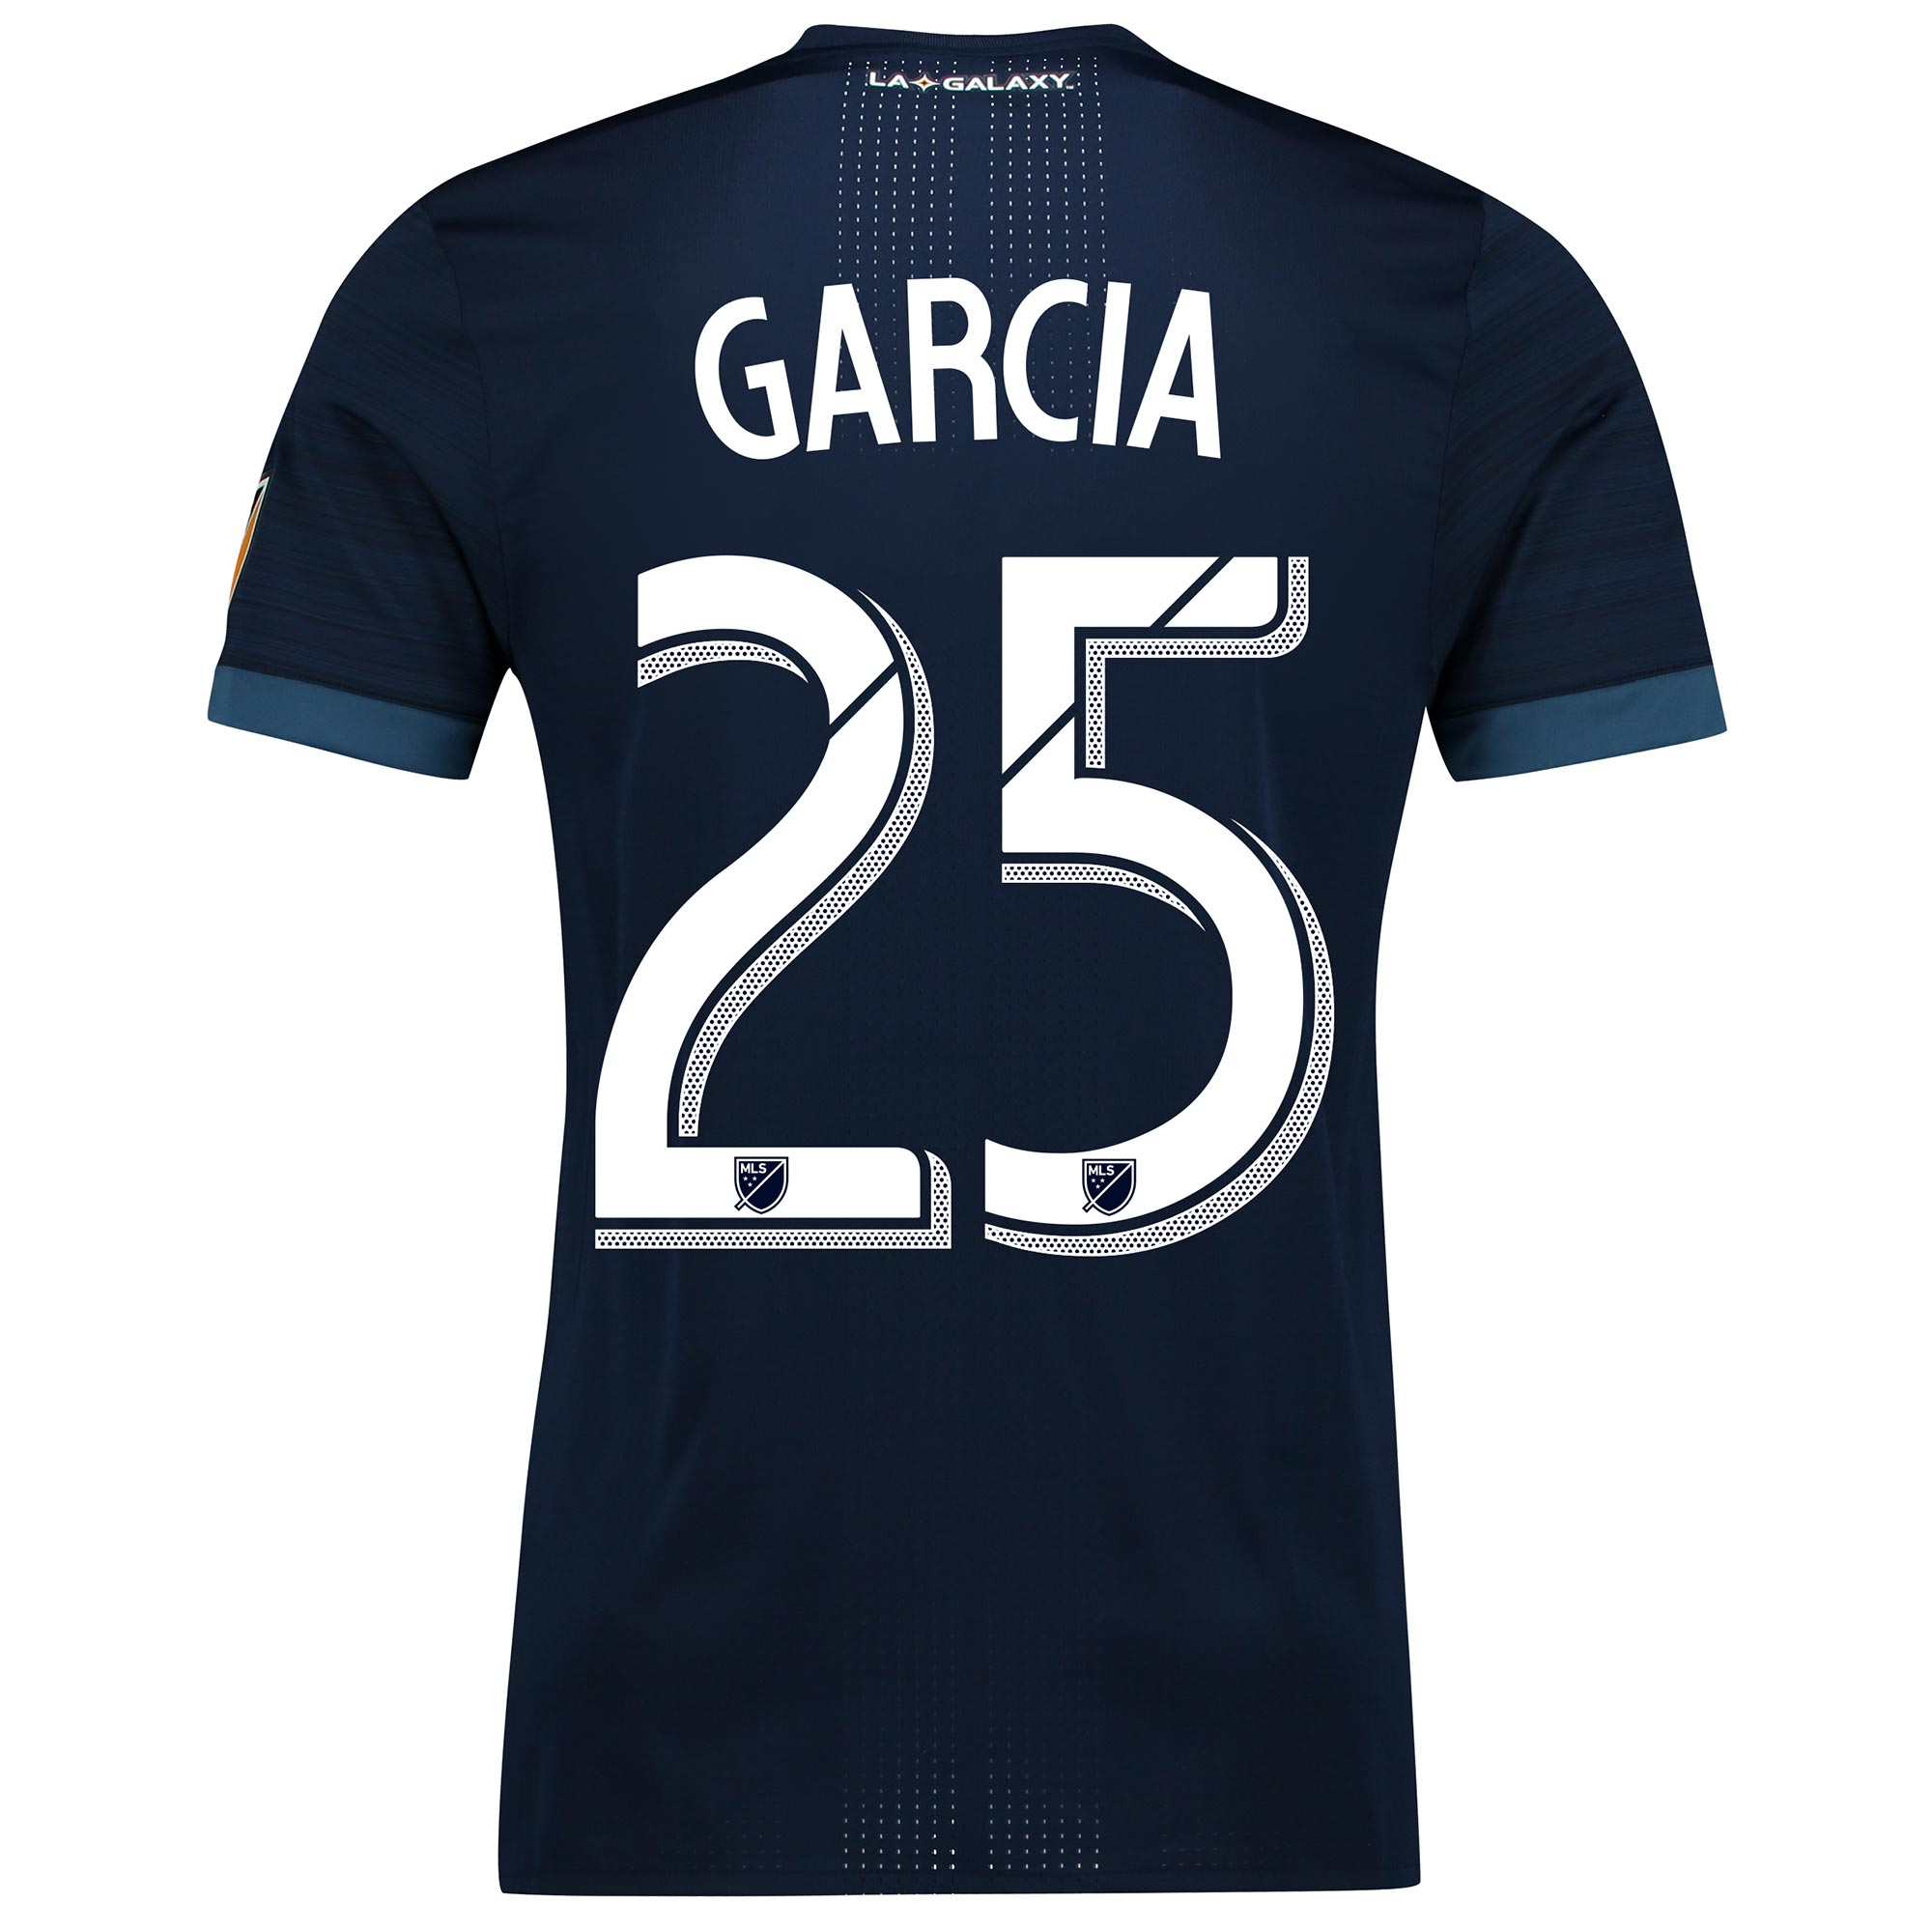 LA Galaxy Authentic Away Shirt 2017-18 with Garcia 25 printing, N/A